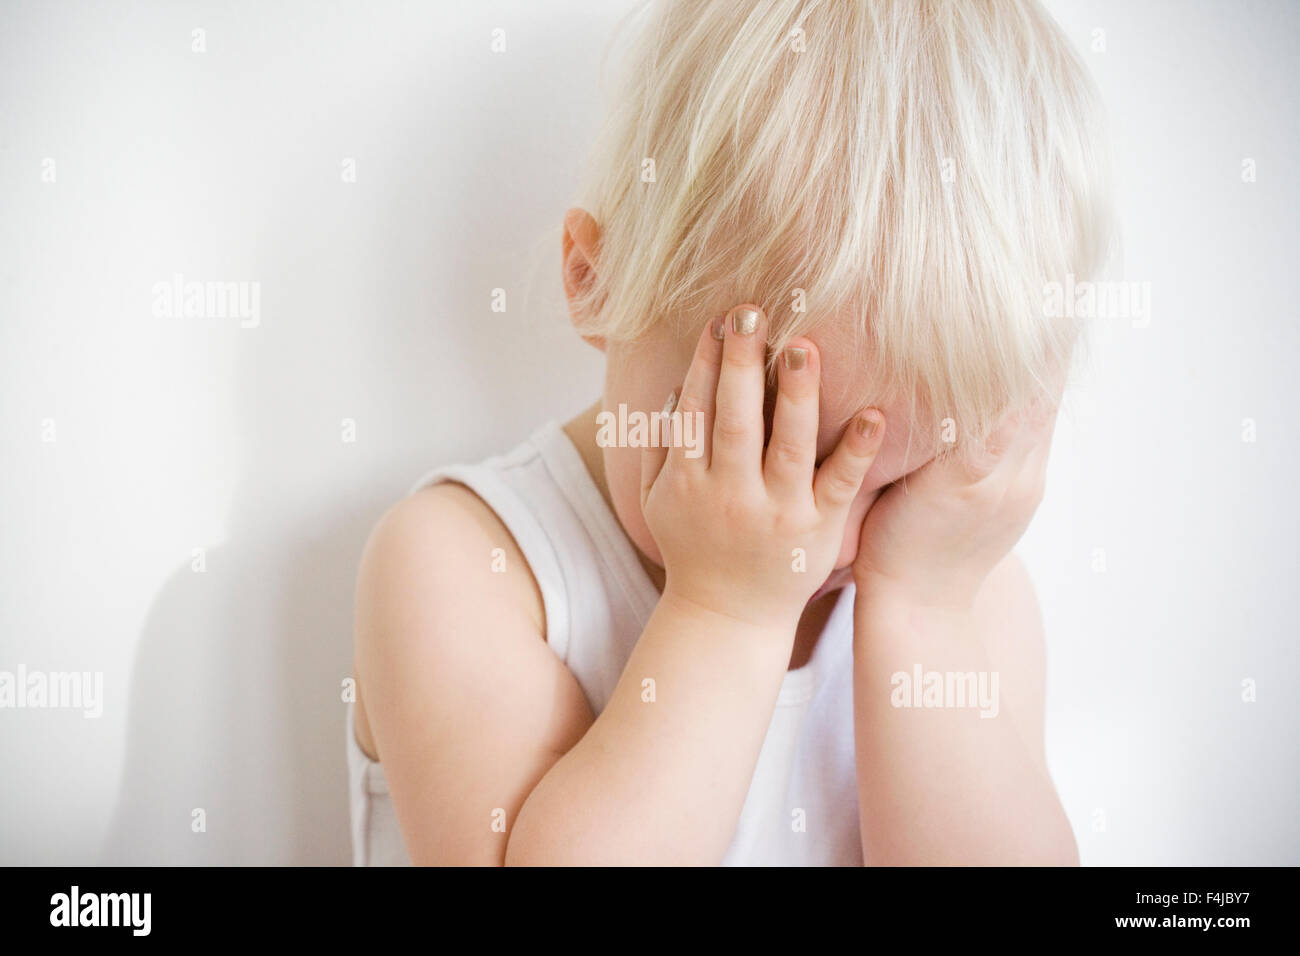 Un enfant blond blanc contre, en Suède. Photo Stock